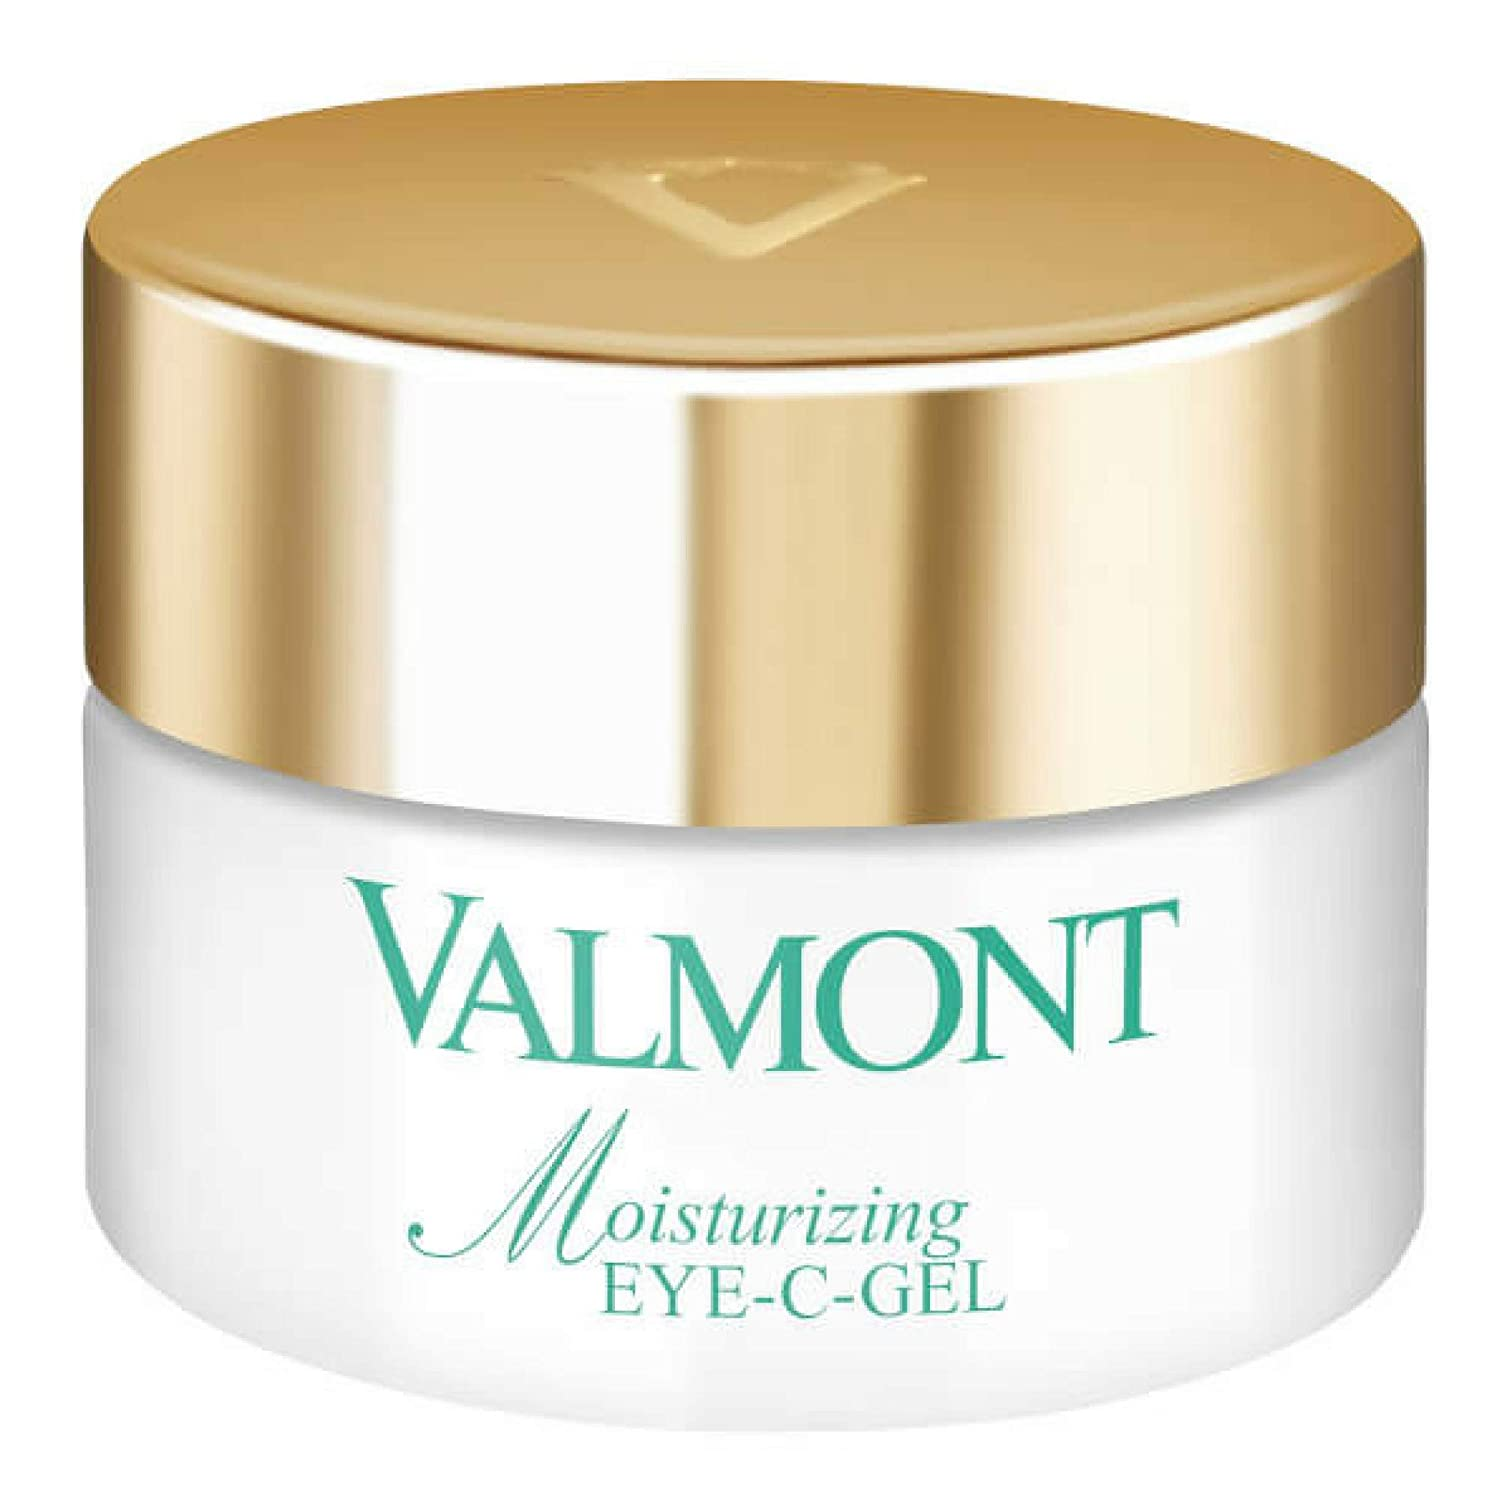 Valmont eye-c-gel idratante – 15 ml